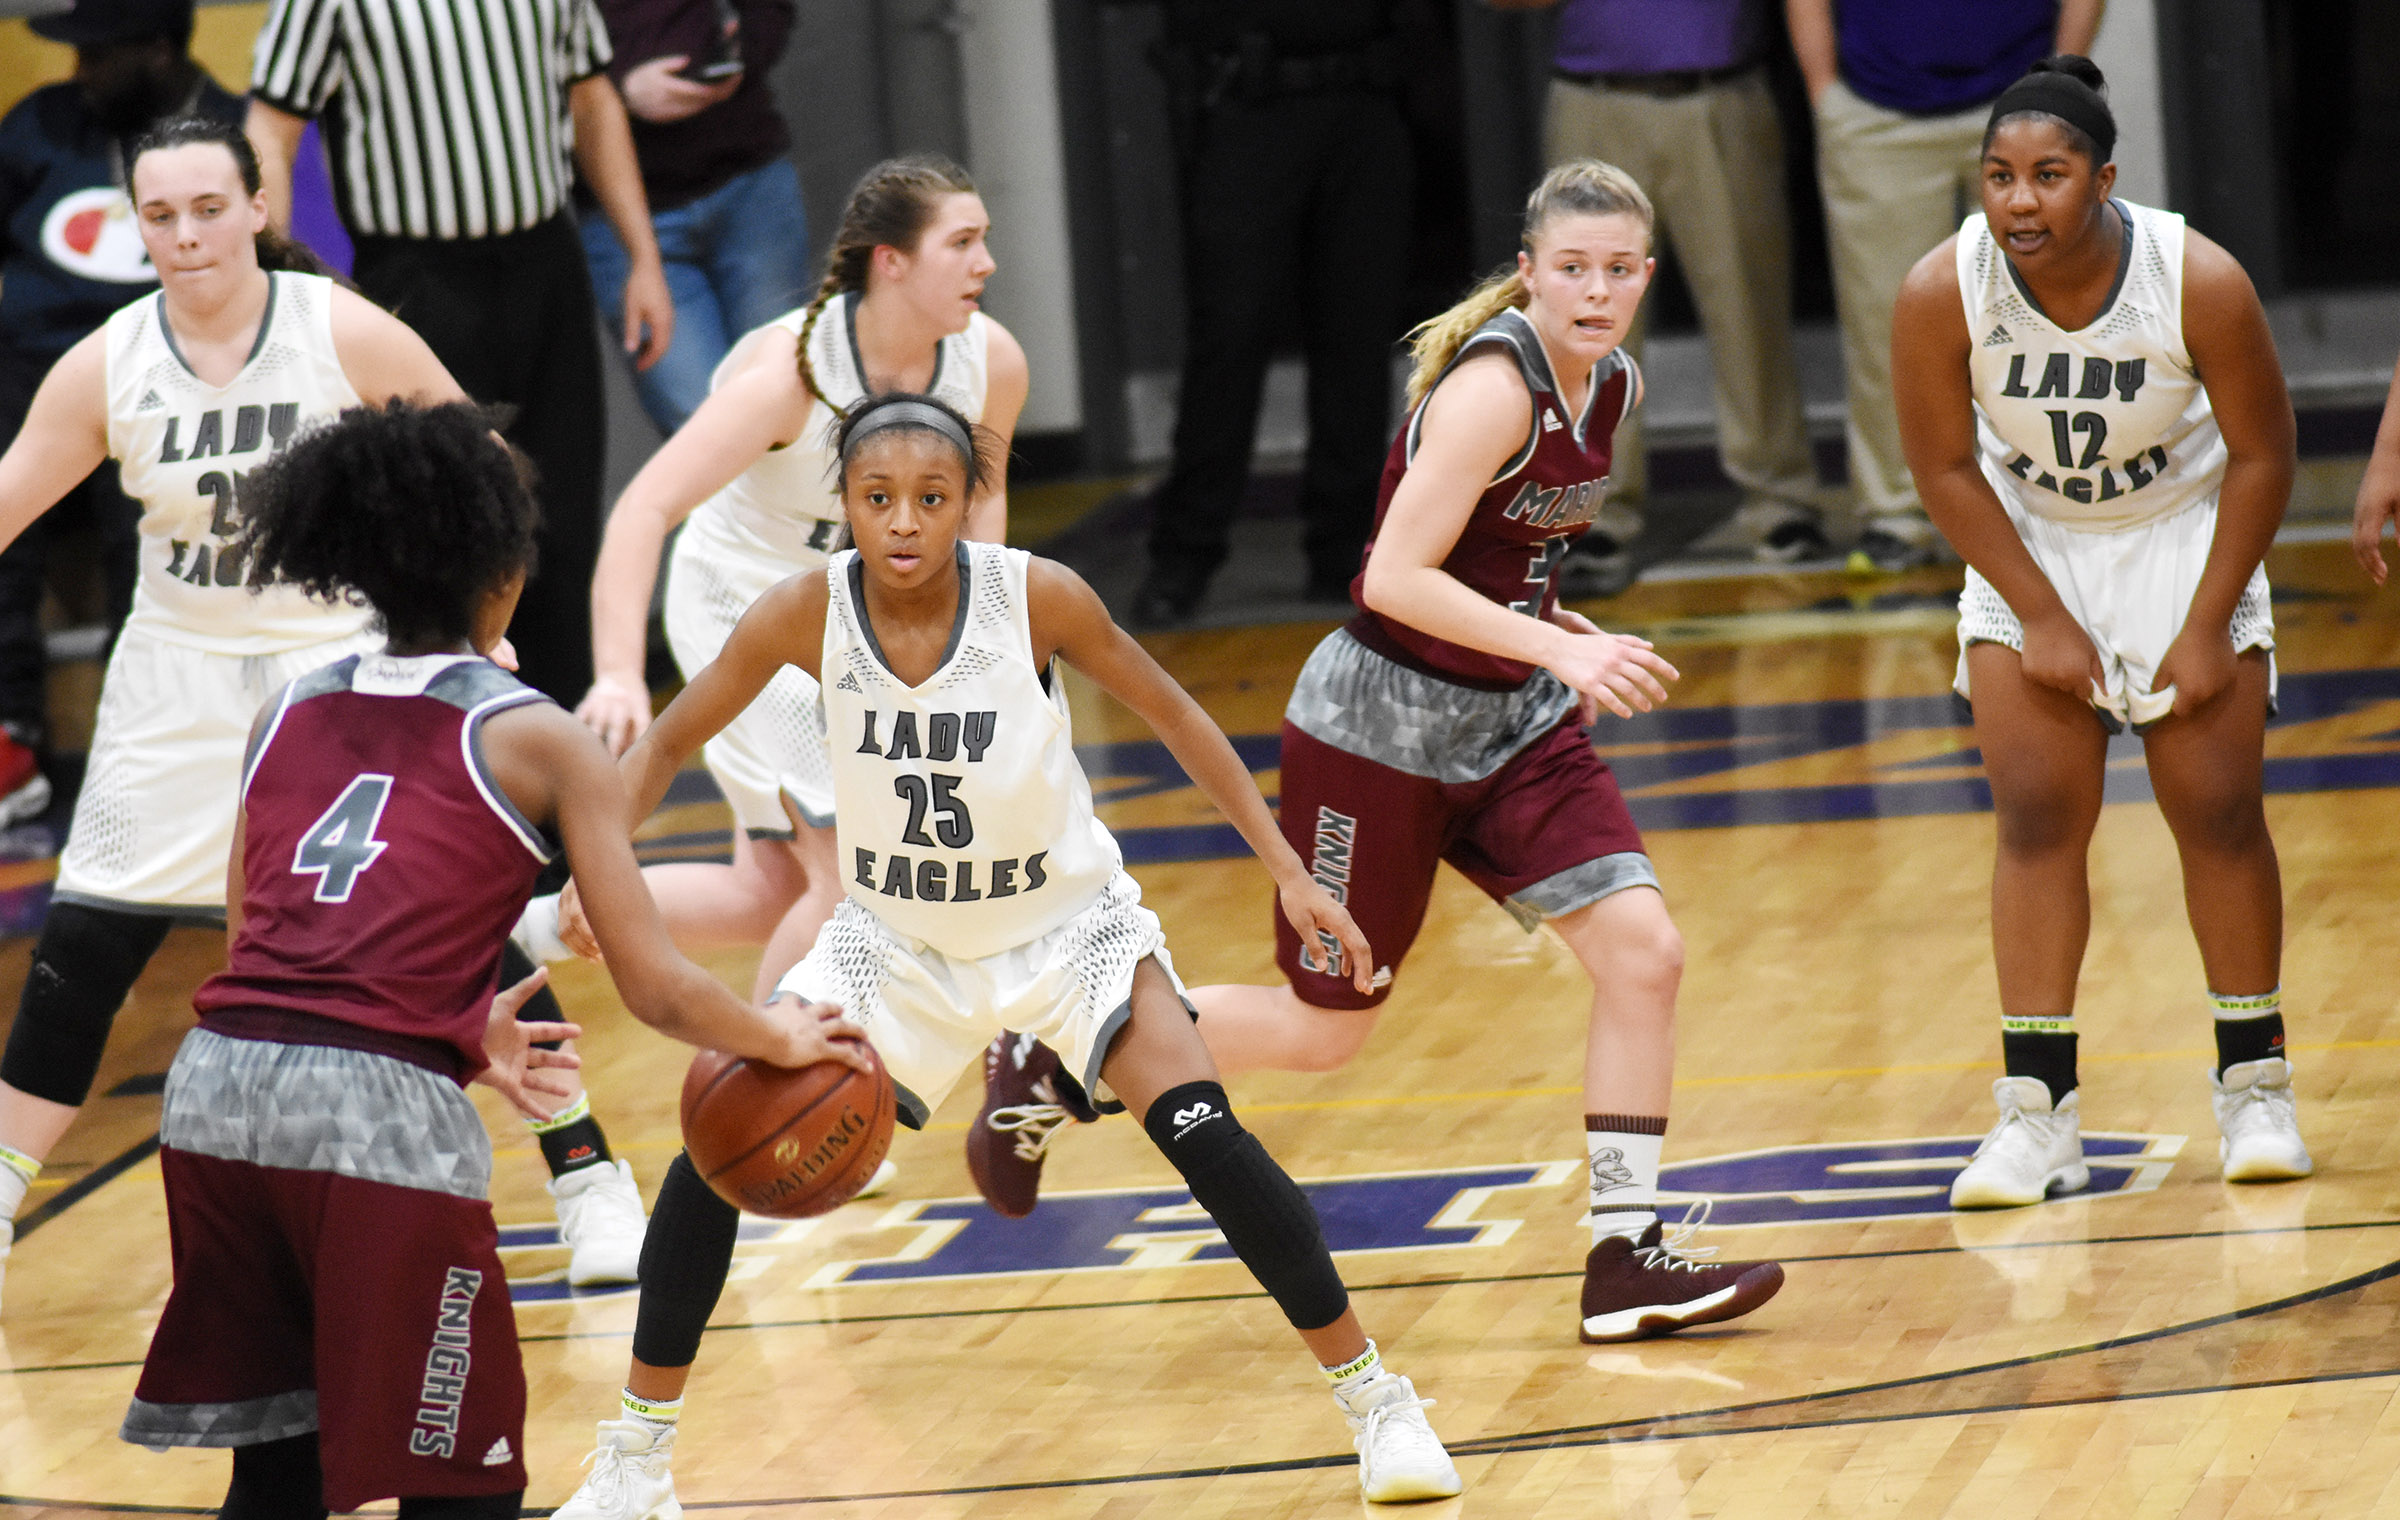 Campbellsville Middle School eighth-grader Bri Gowdy plays defense.